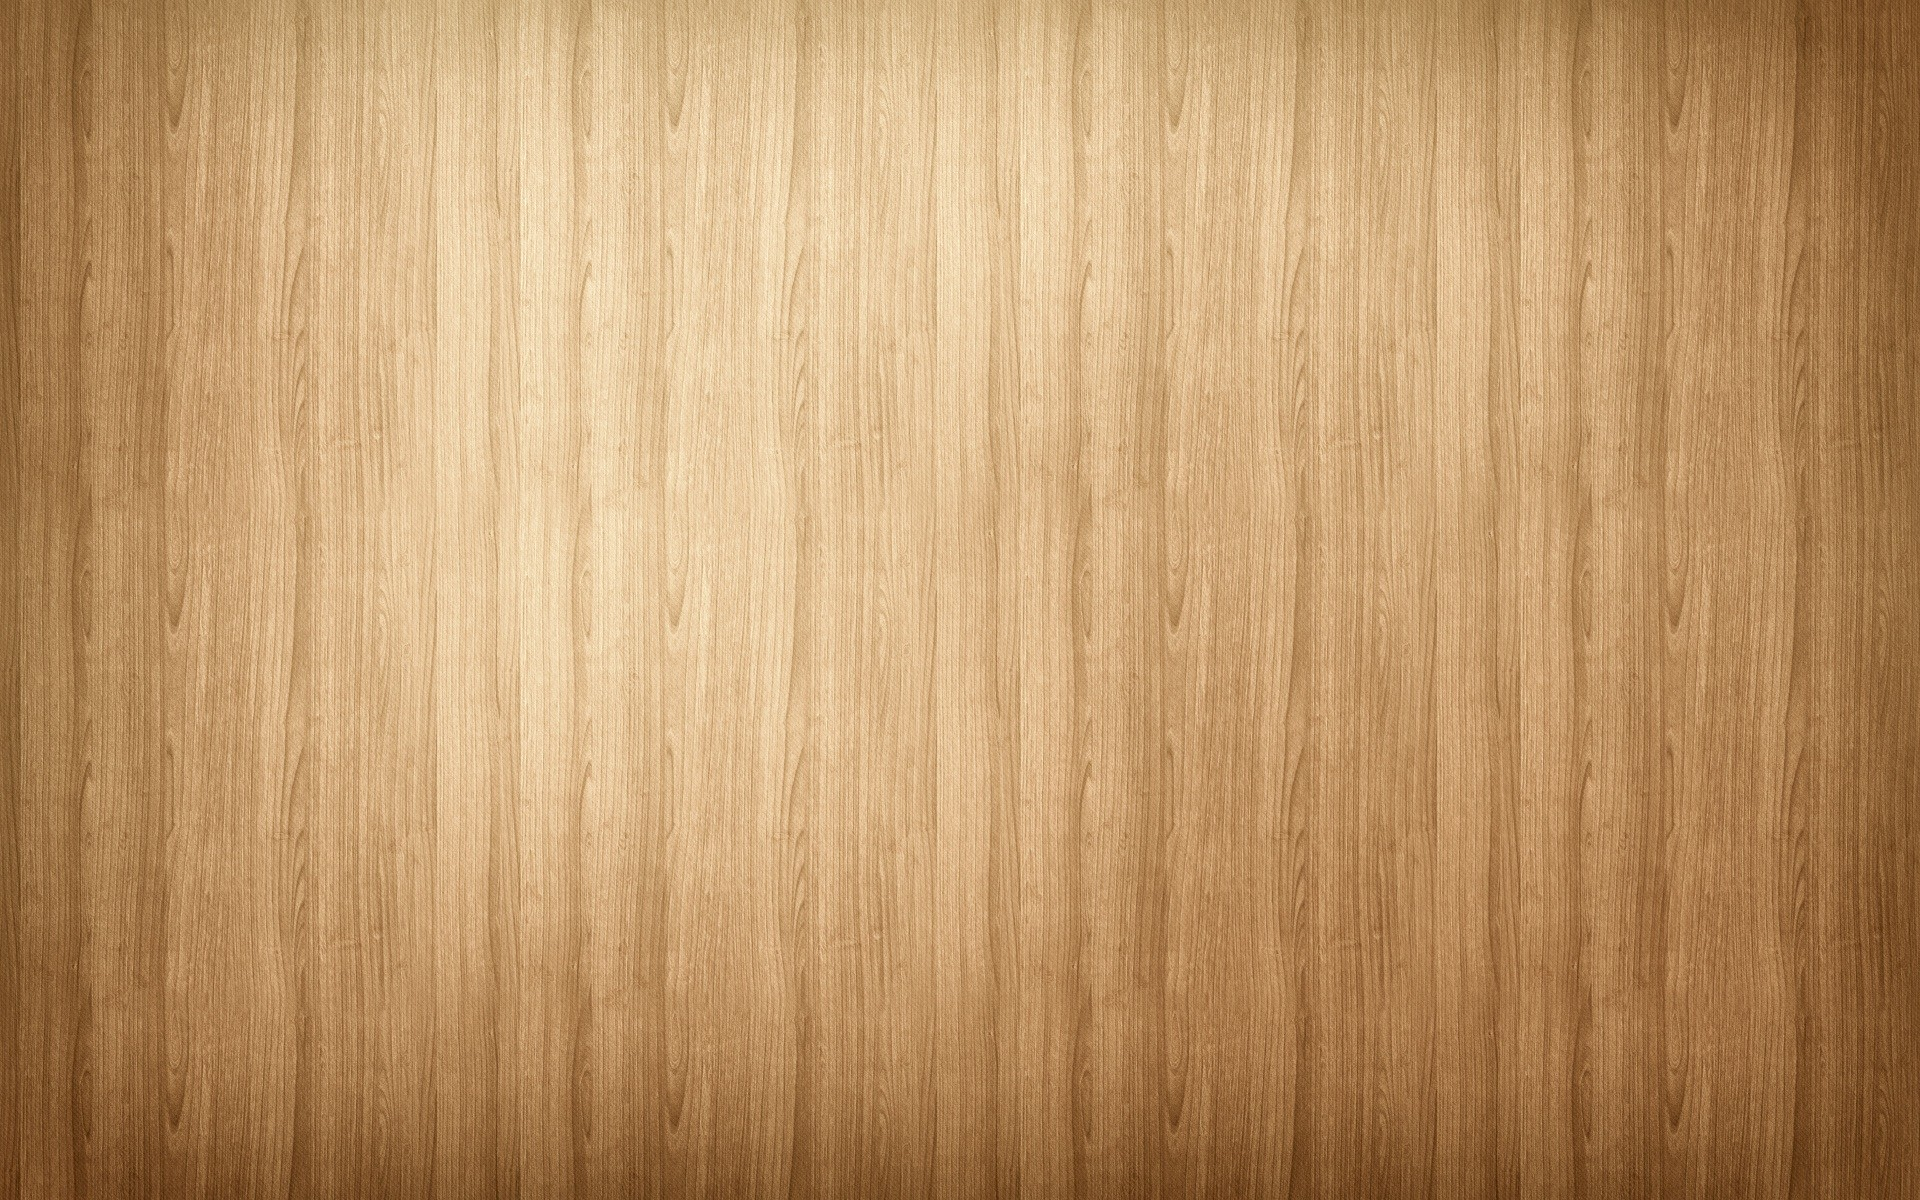 1920x1200 Light wood wallpaper background HD.